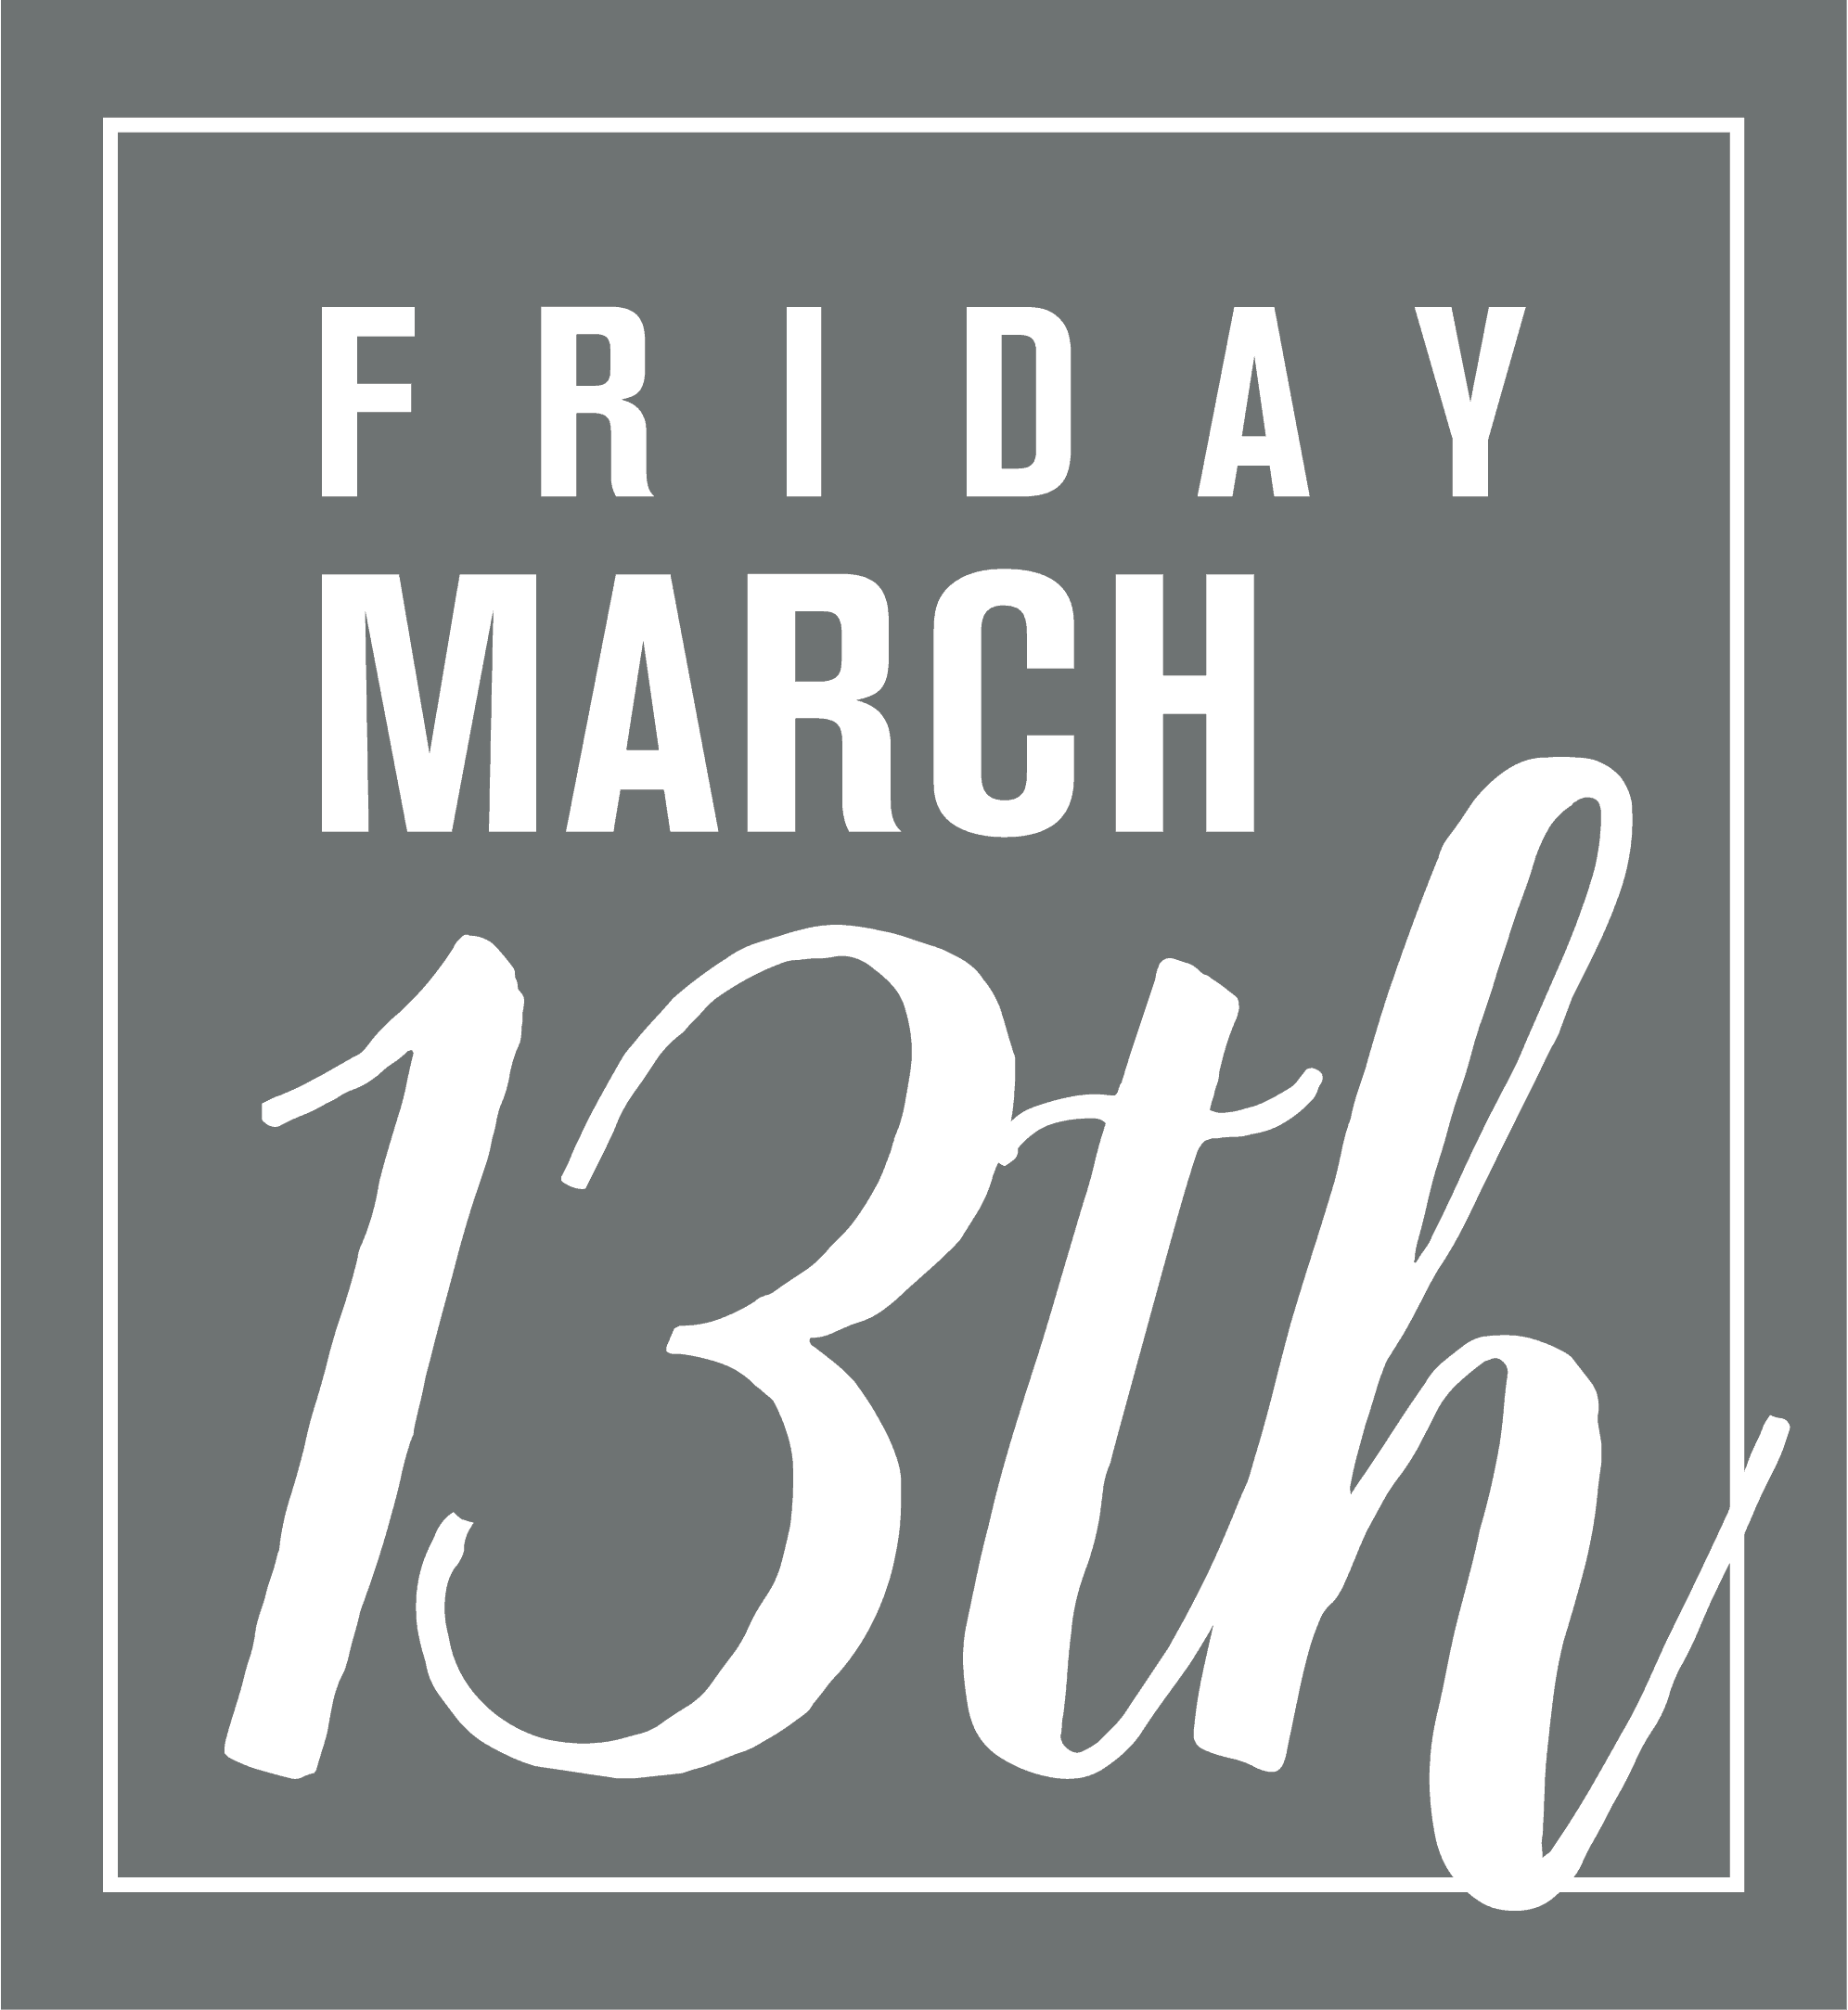 Friday March 13th